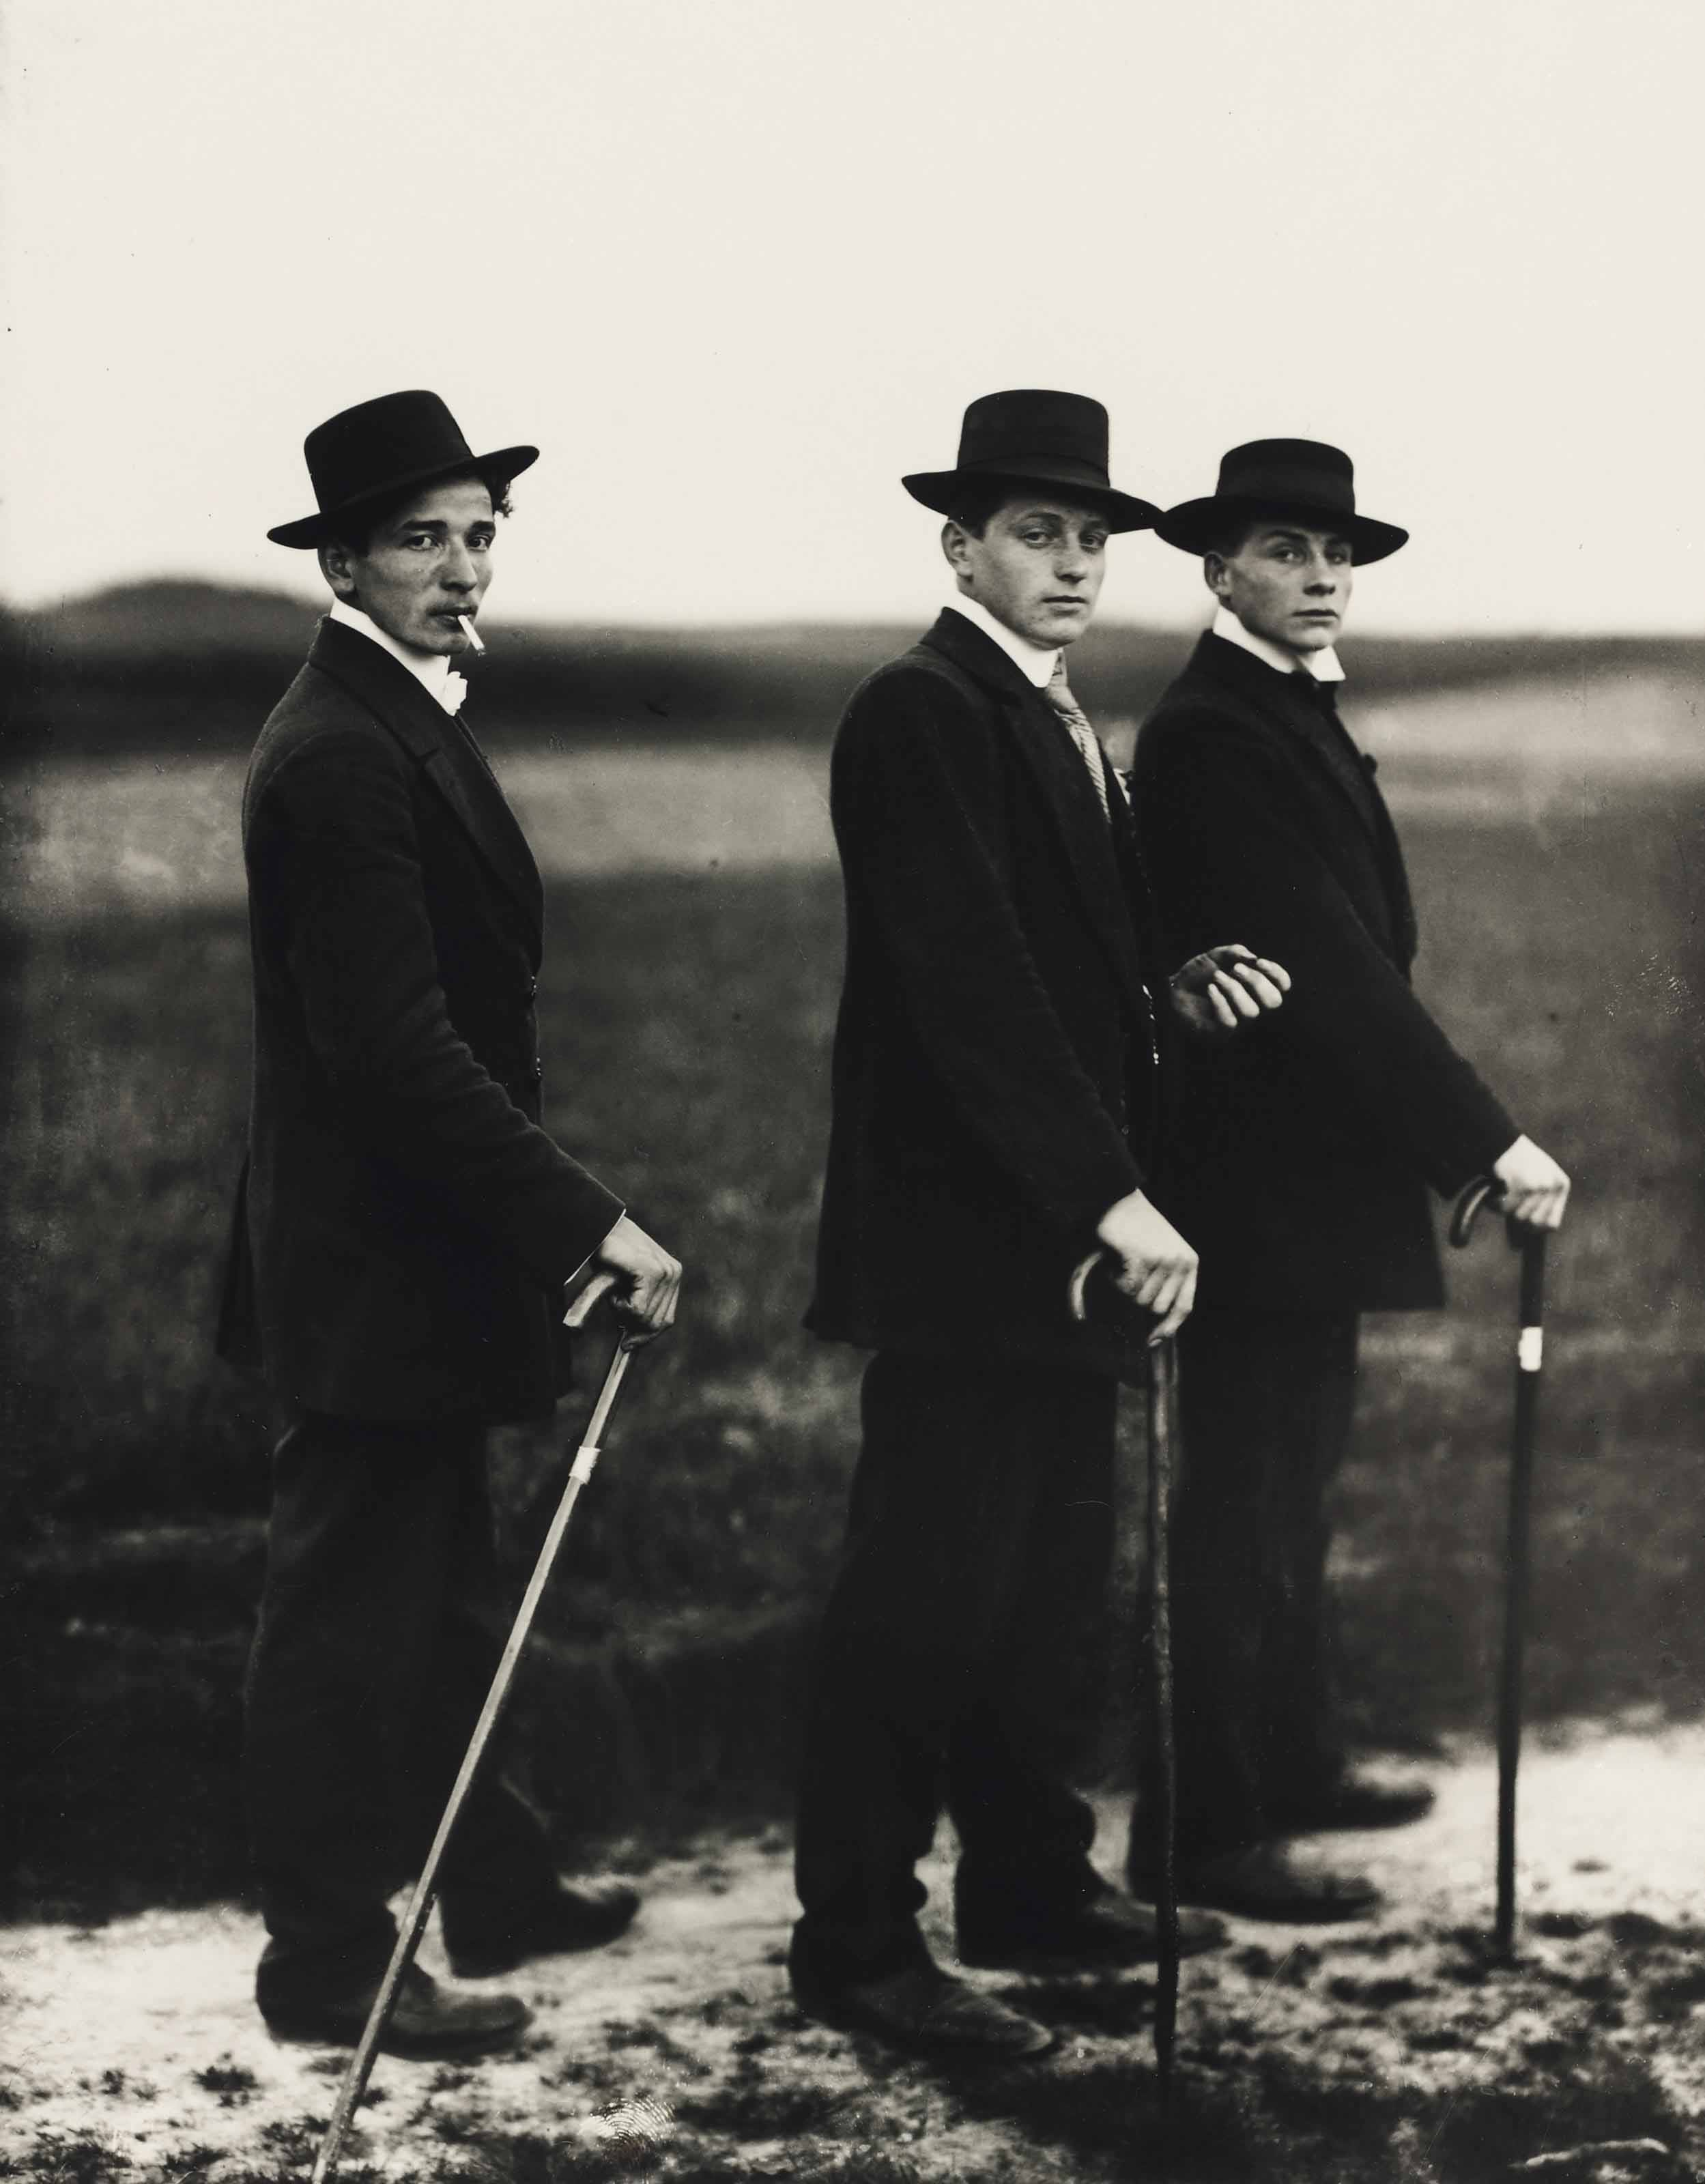 Three young farmers on their way to a dance, Westerland, 1914